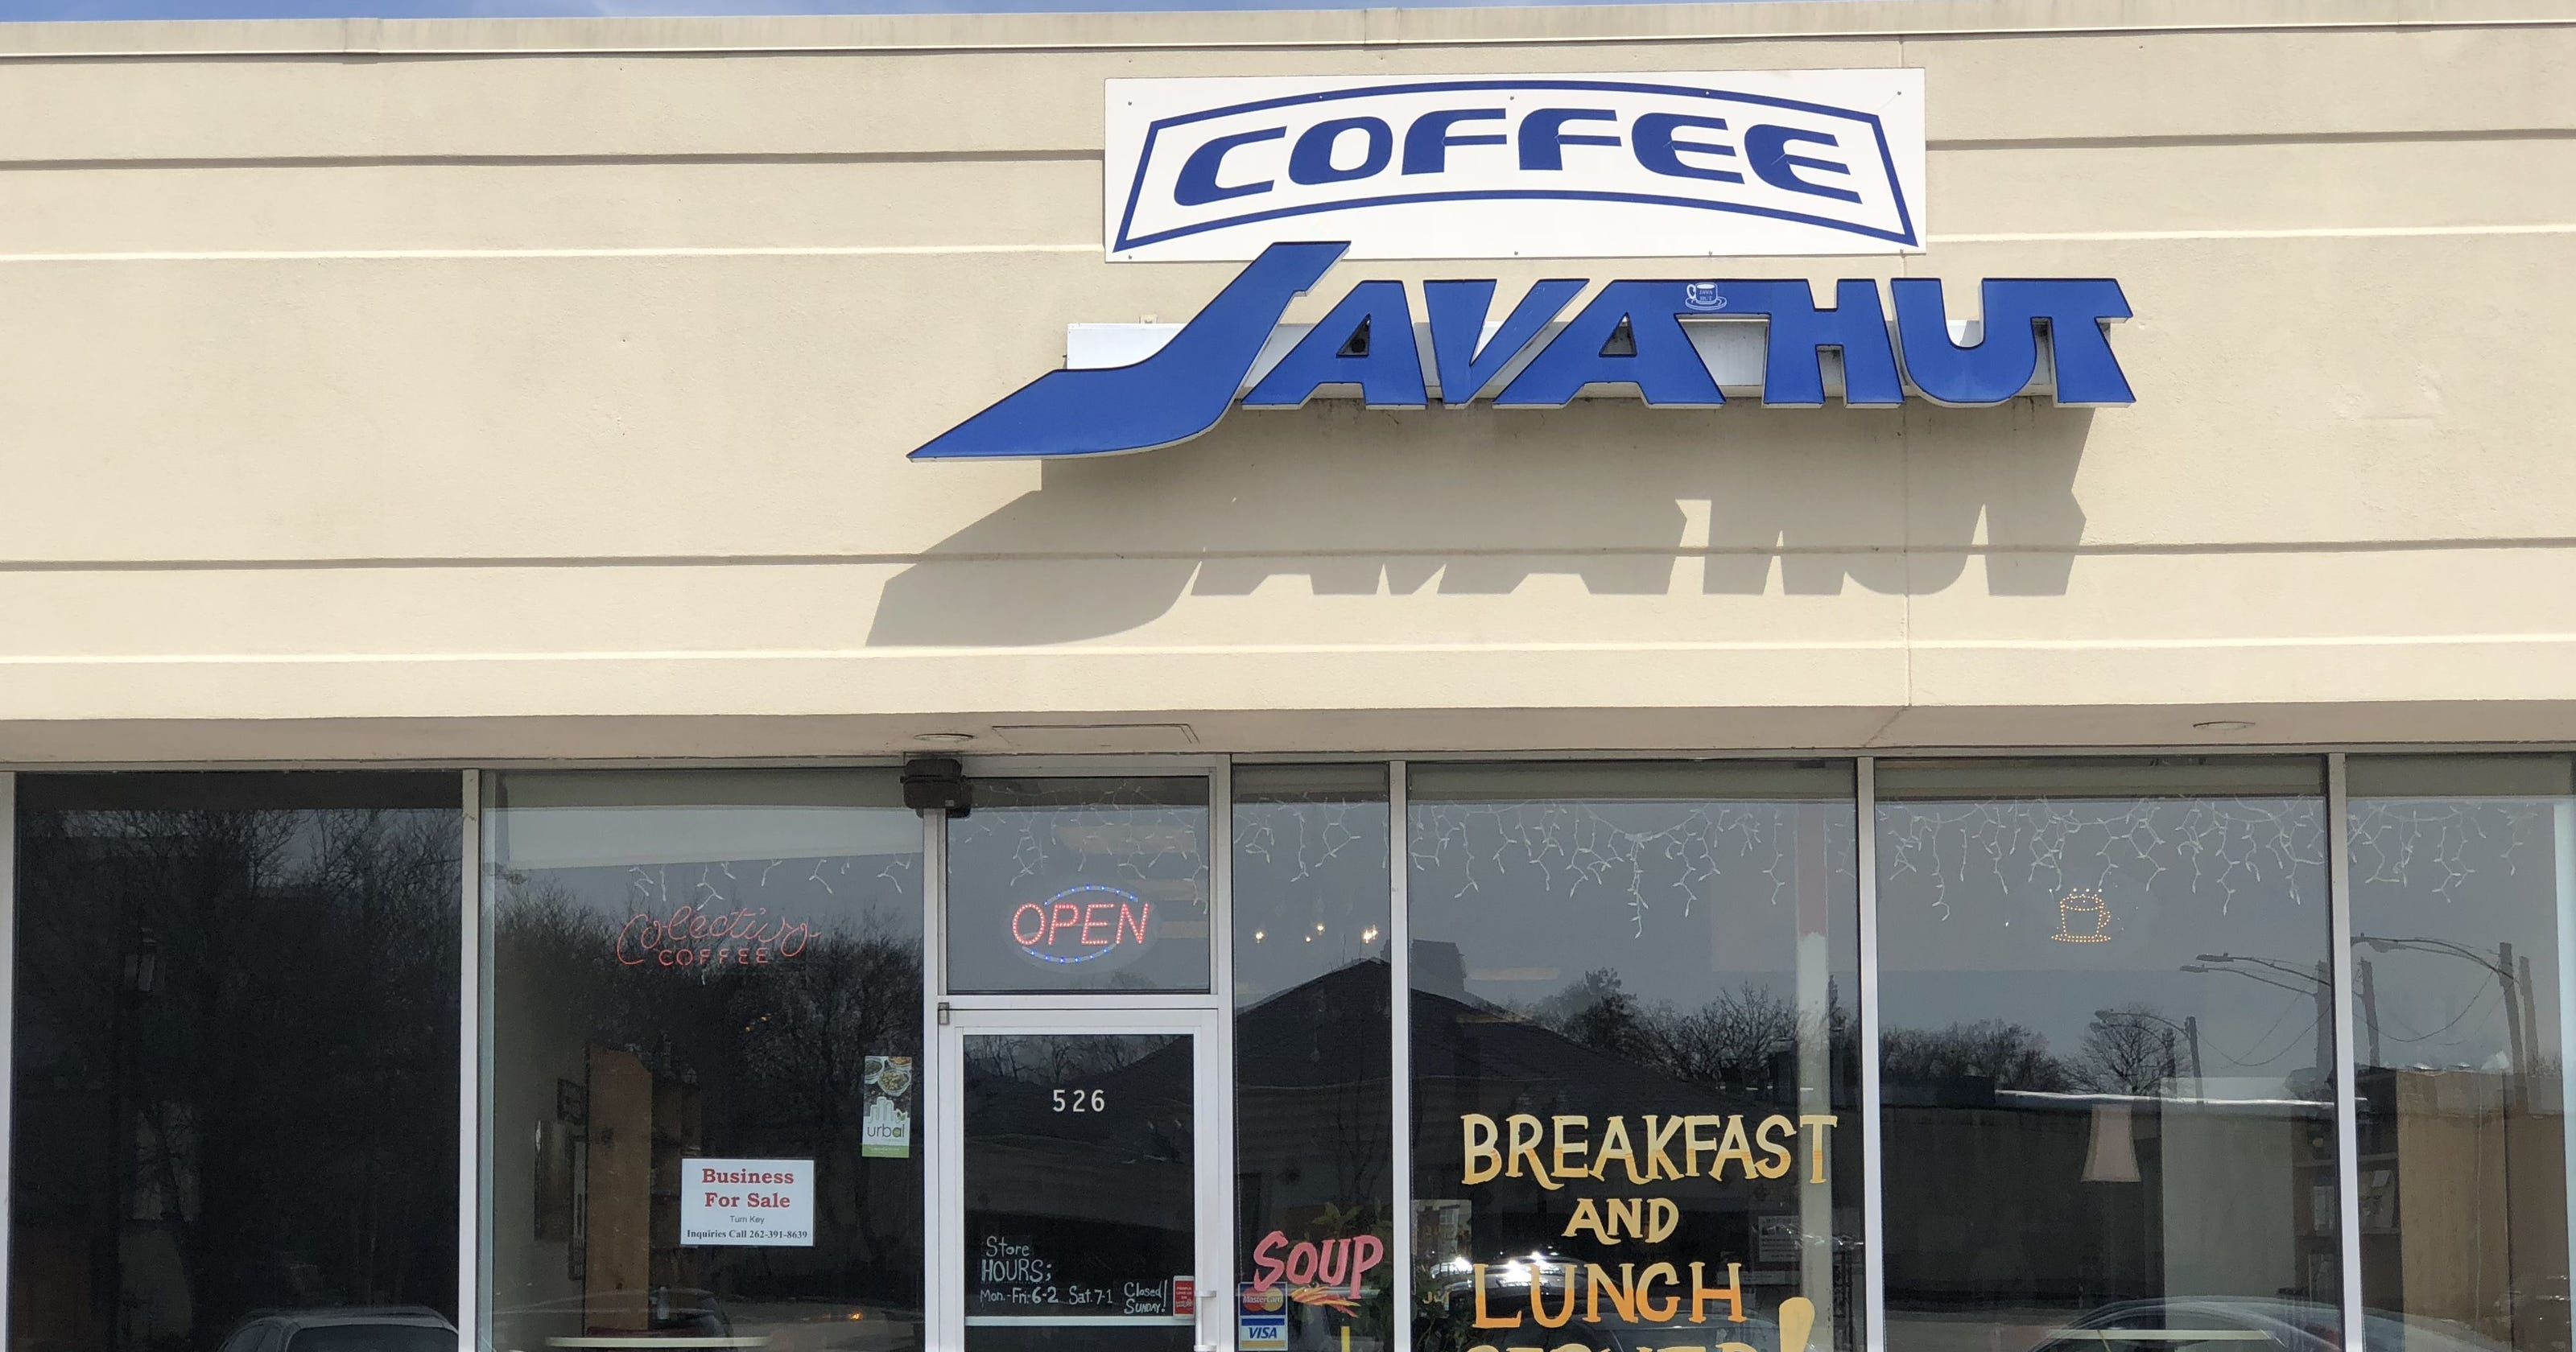 New owner takes over Java Hut coffee shop in Oconomowoc 3200x1680